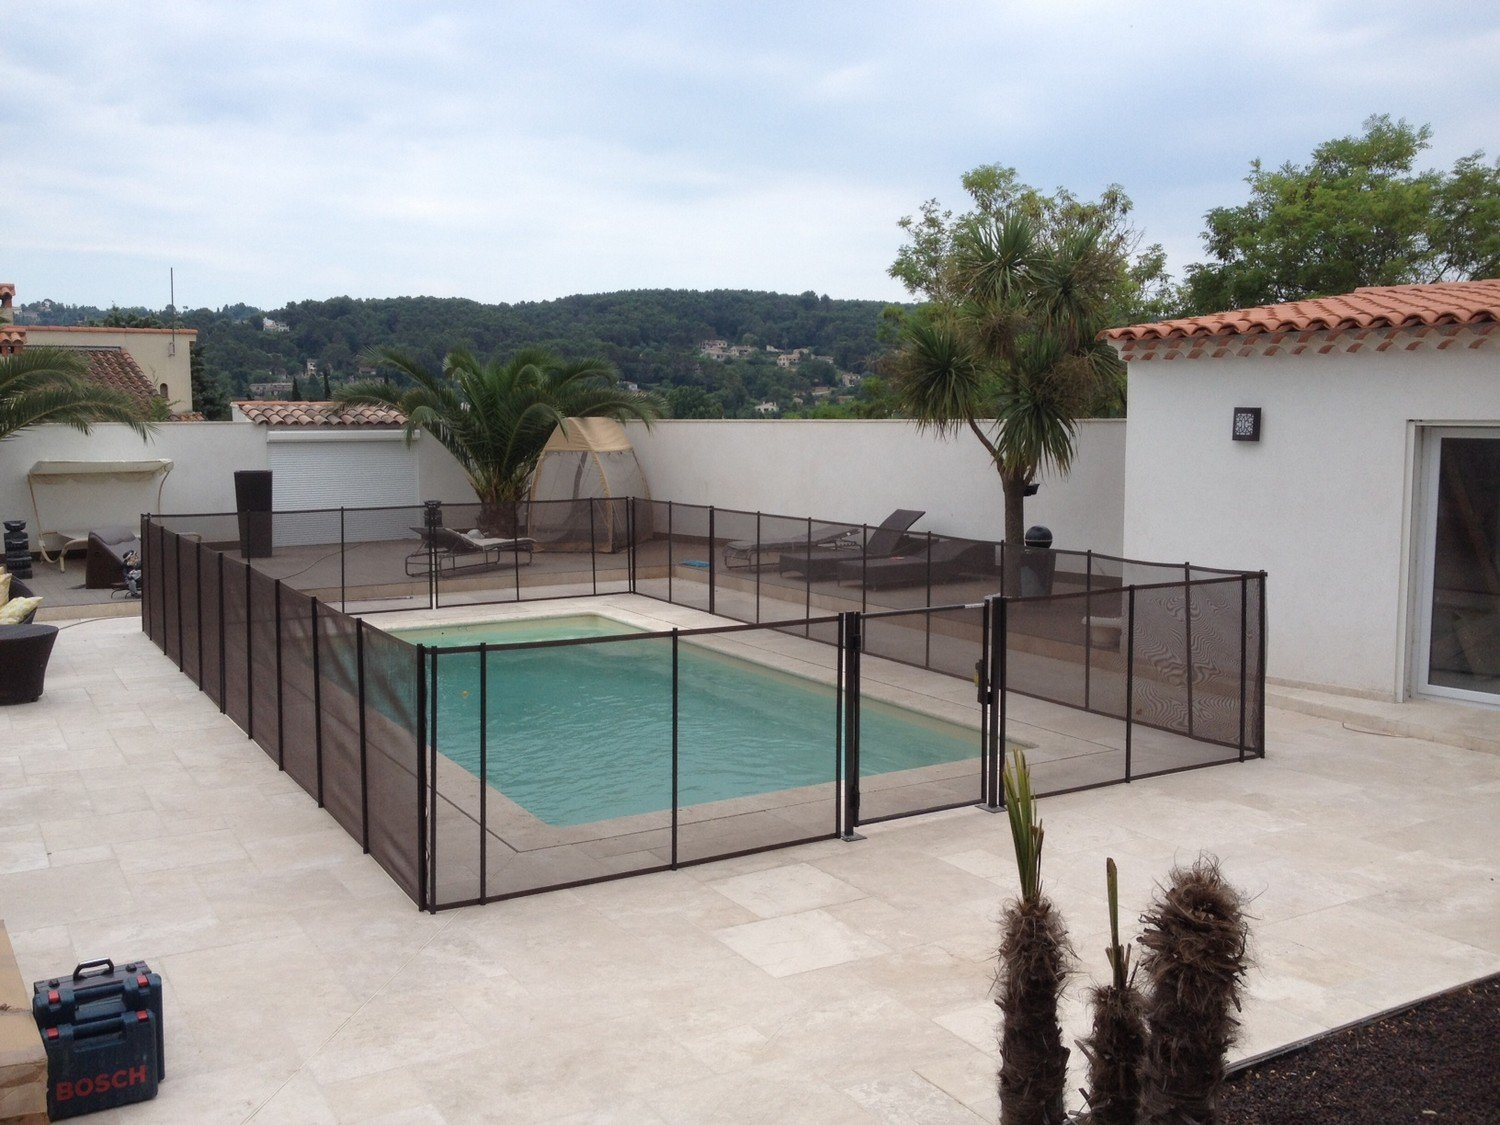 Barri re de s curit piscine la beethoven for Barrieres protection piscine